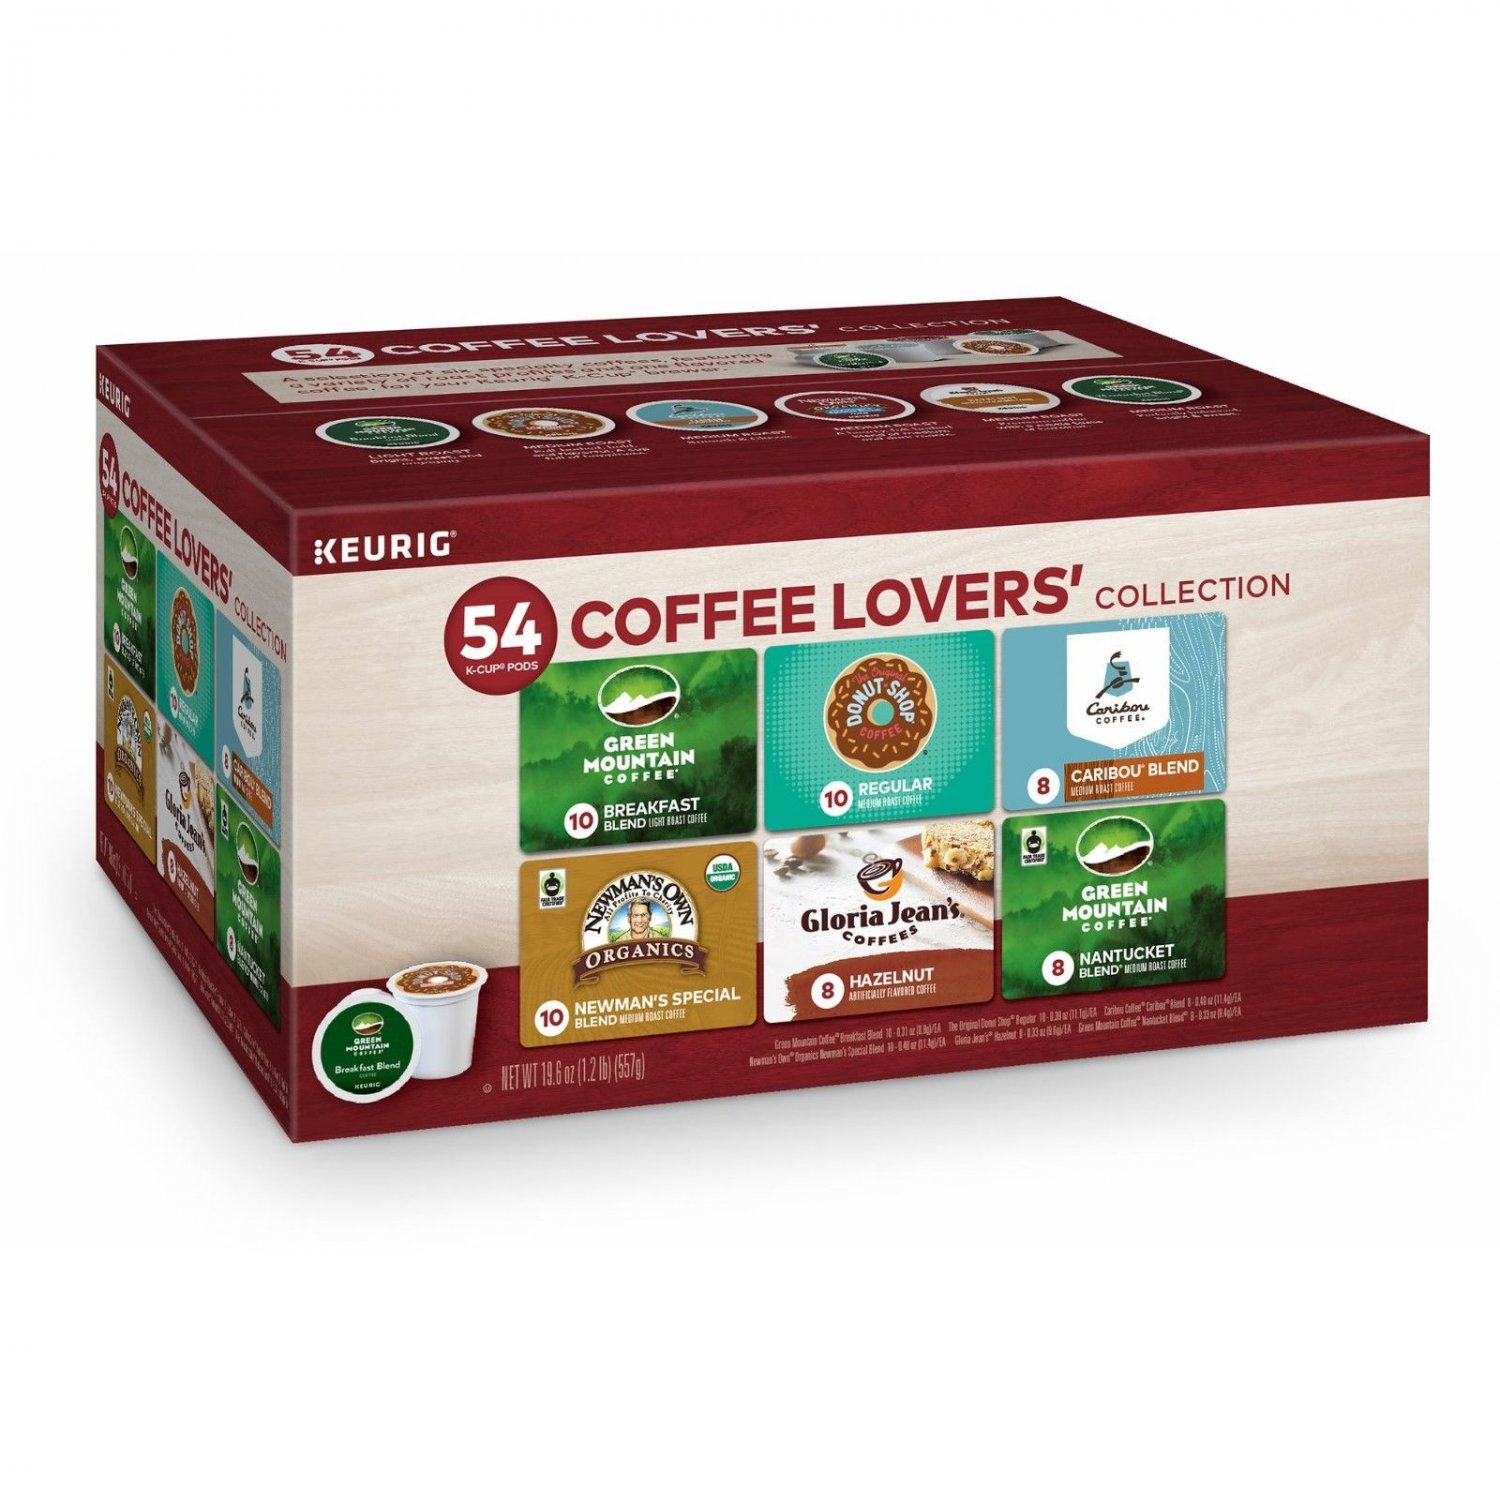 Green Mountain Coffee Lovers Variety Pack, 54 ct BRAND NEW